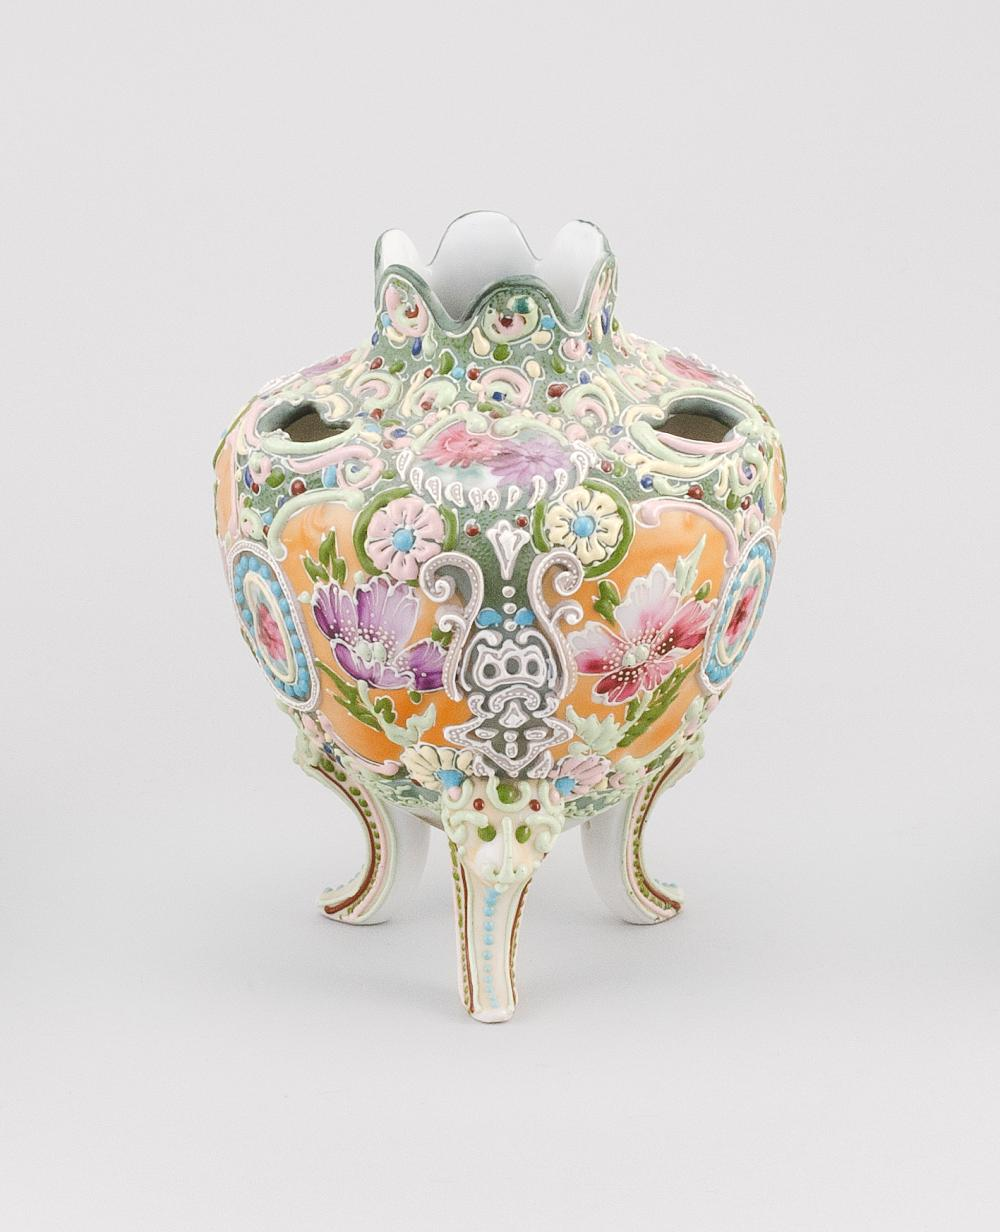 MORIAGE NIPPON PORCELAIN NARCISSUS VASE Ovoid, with tripod base and floral design. Height 7